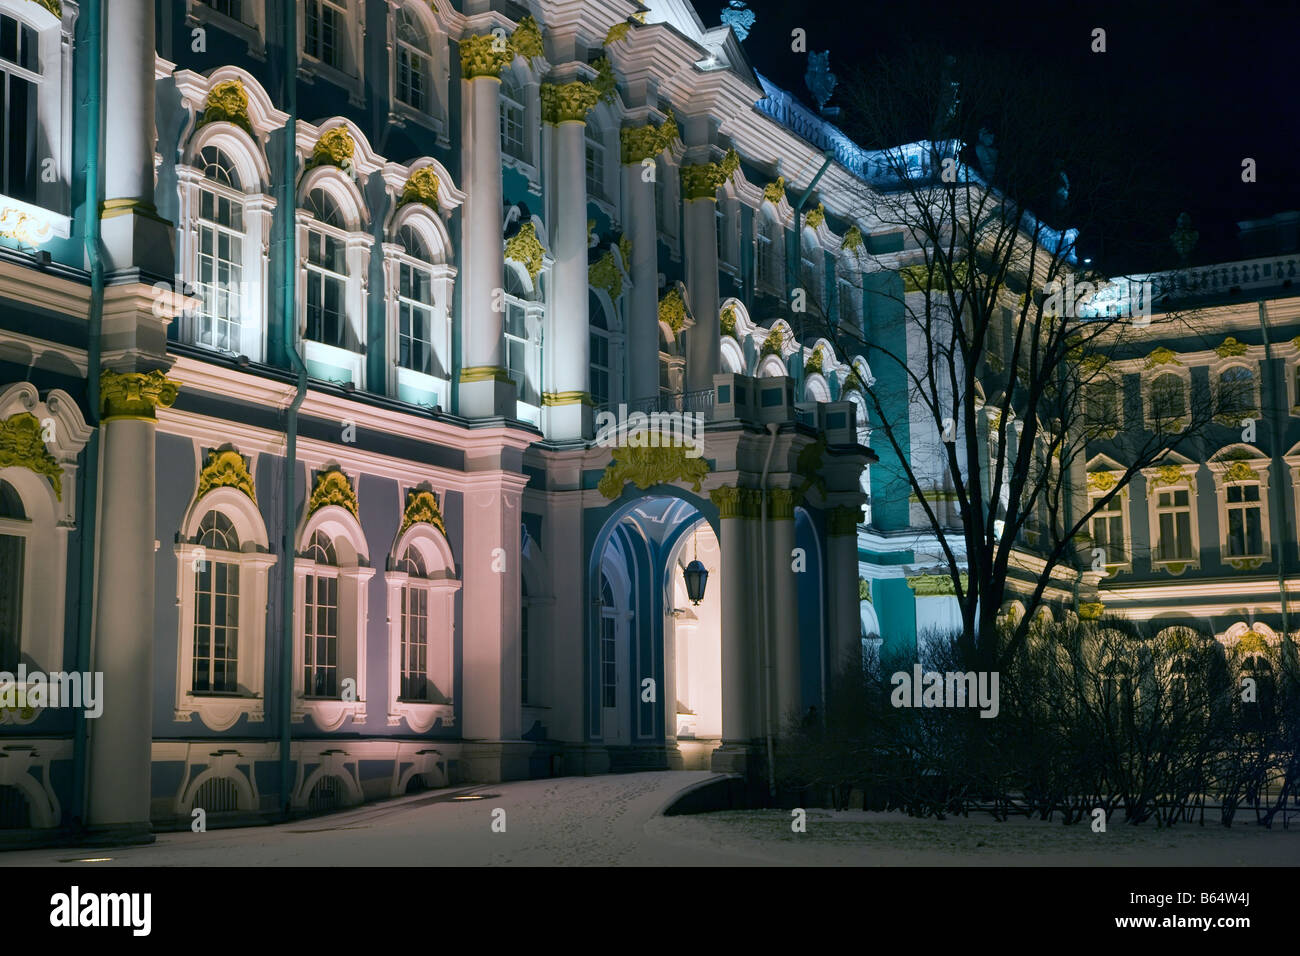 Winter Palace facade in winter night on black sky background, St. Petersburg - Stock Image